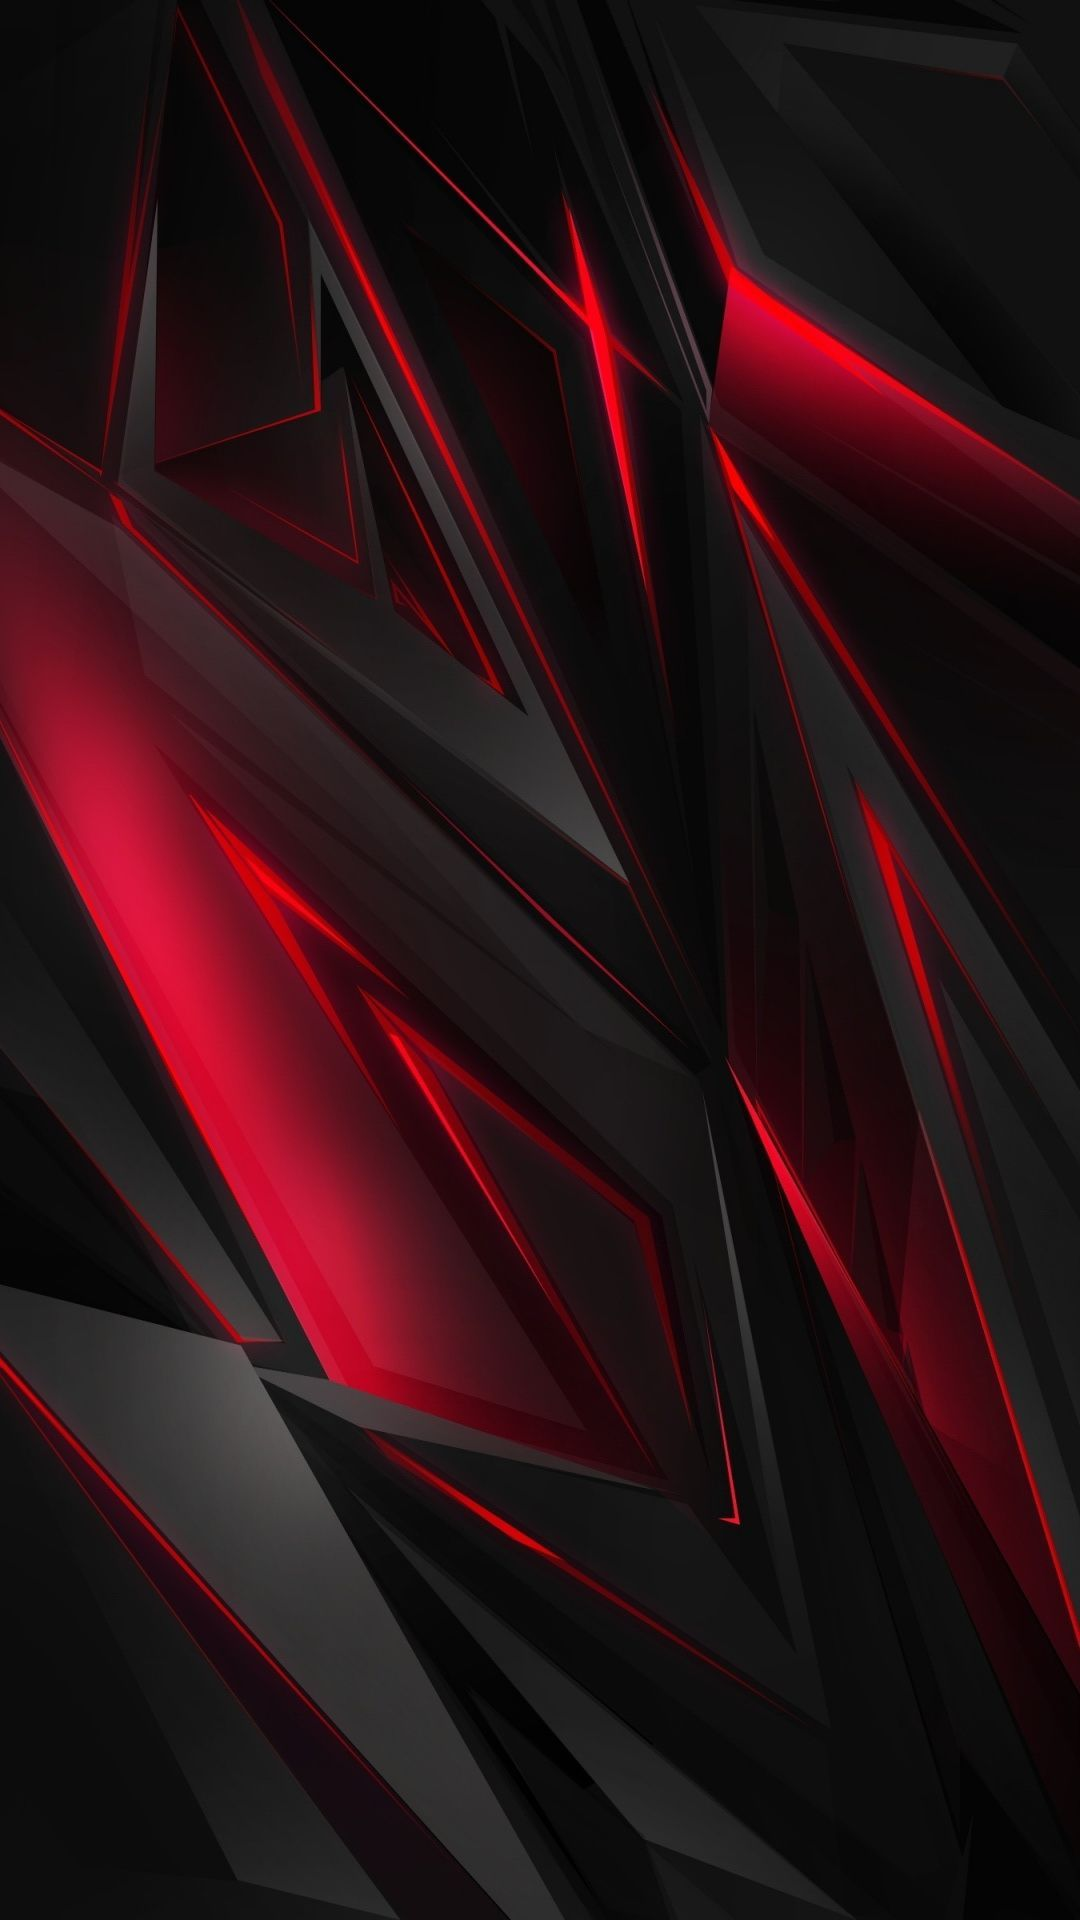 Red/Black | iPhone Wallpaper